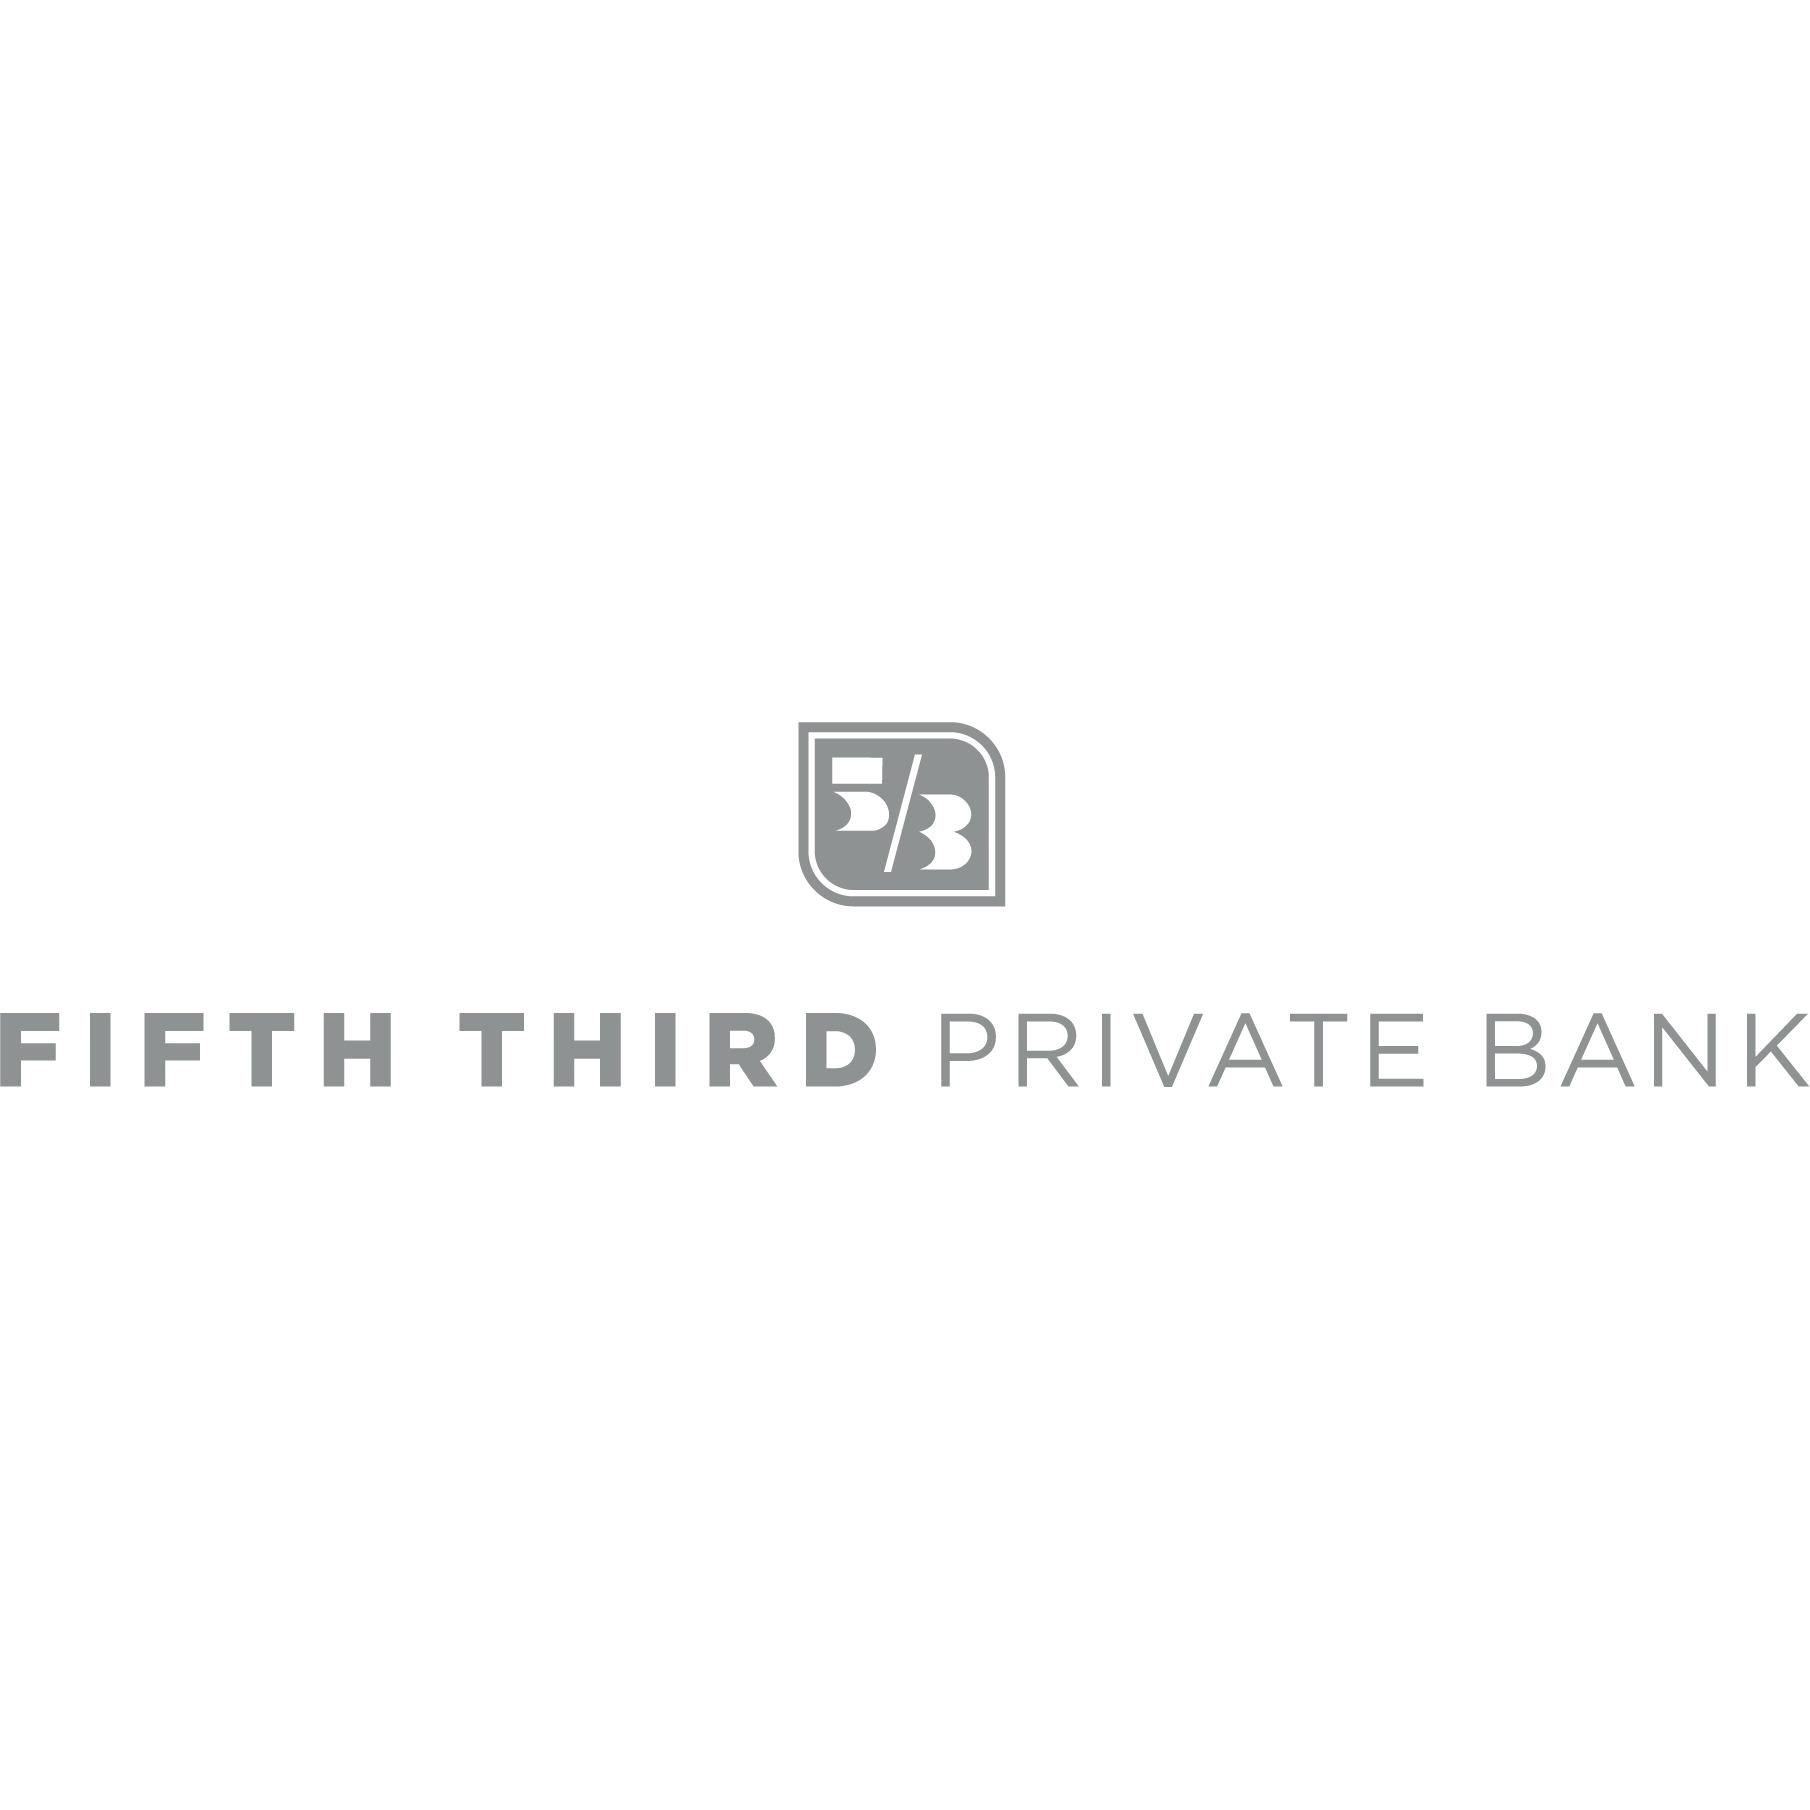 Fifth Third Private Bank - Mimi Bengio